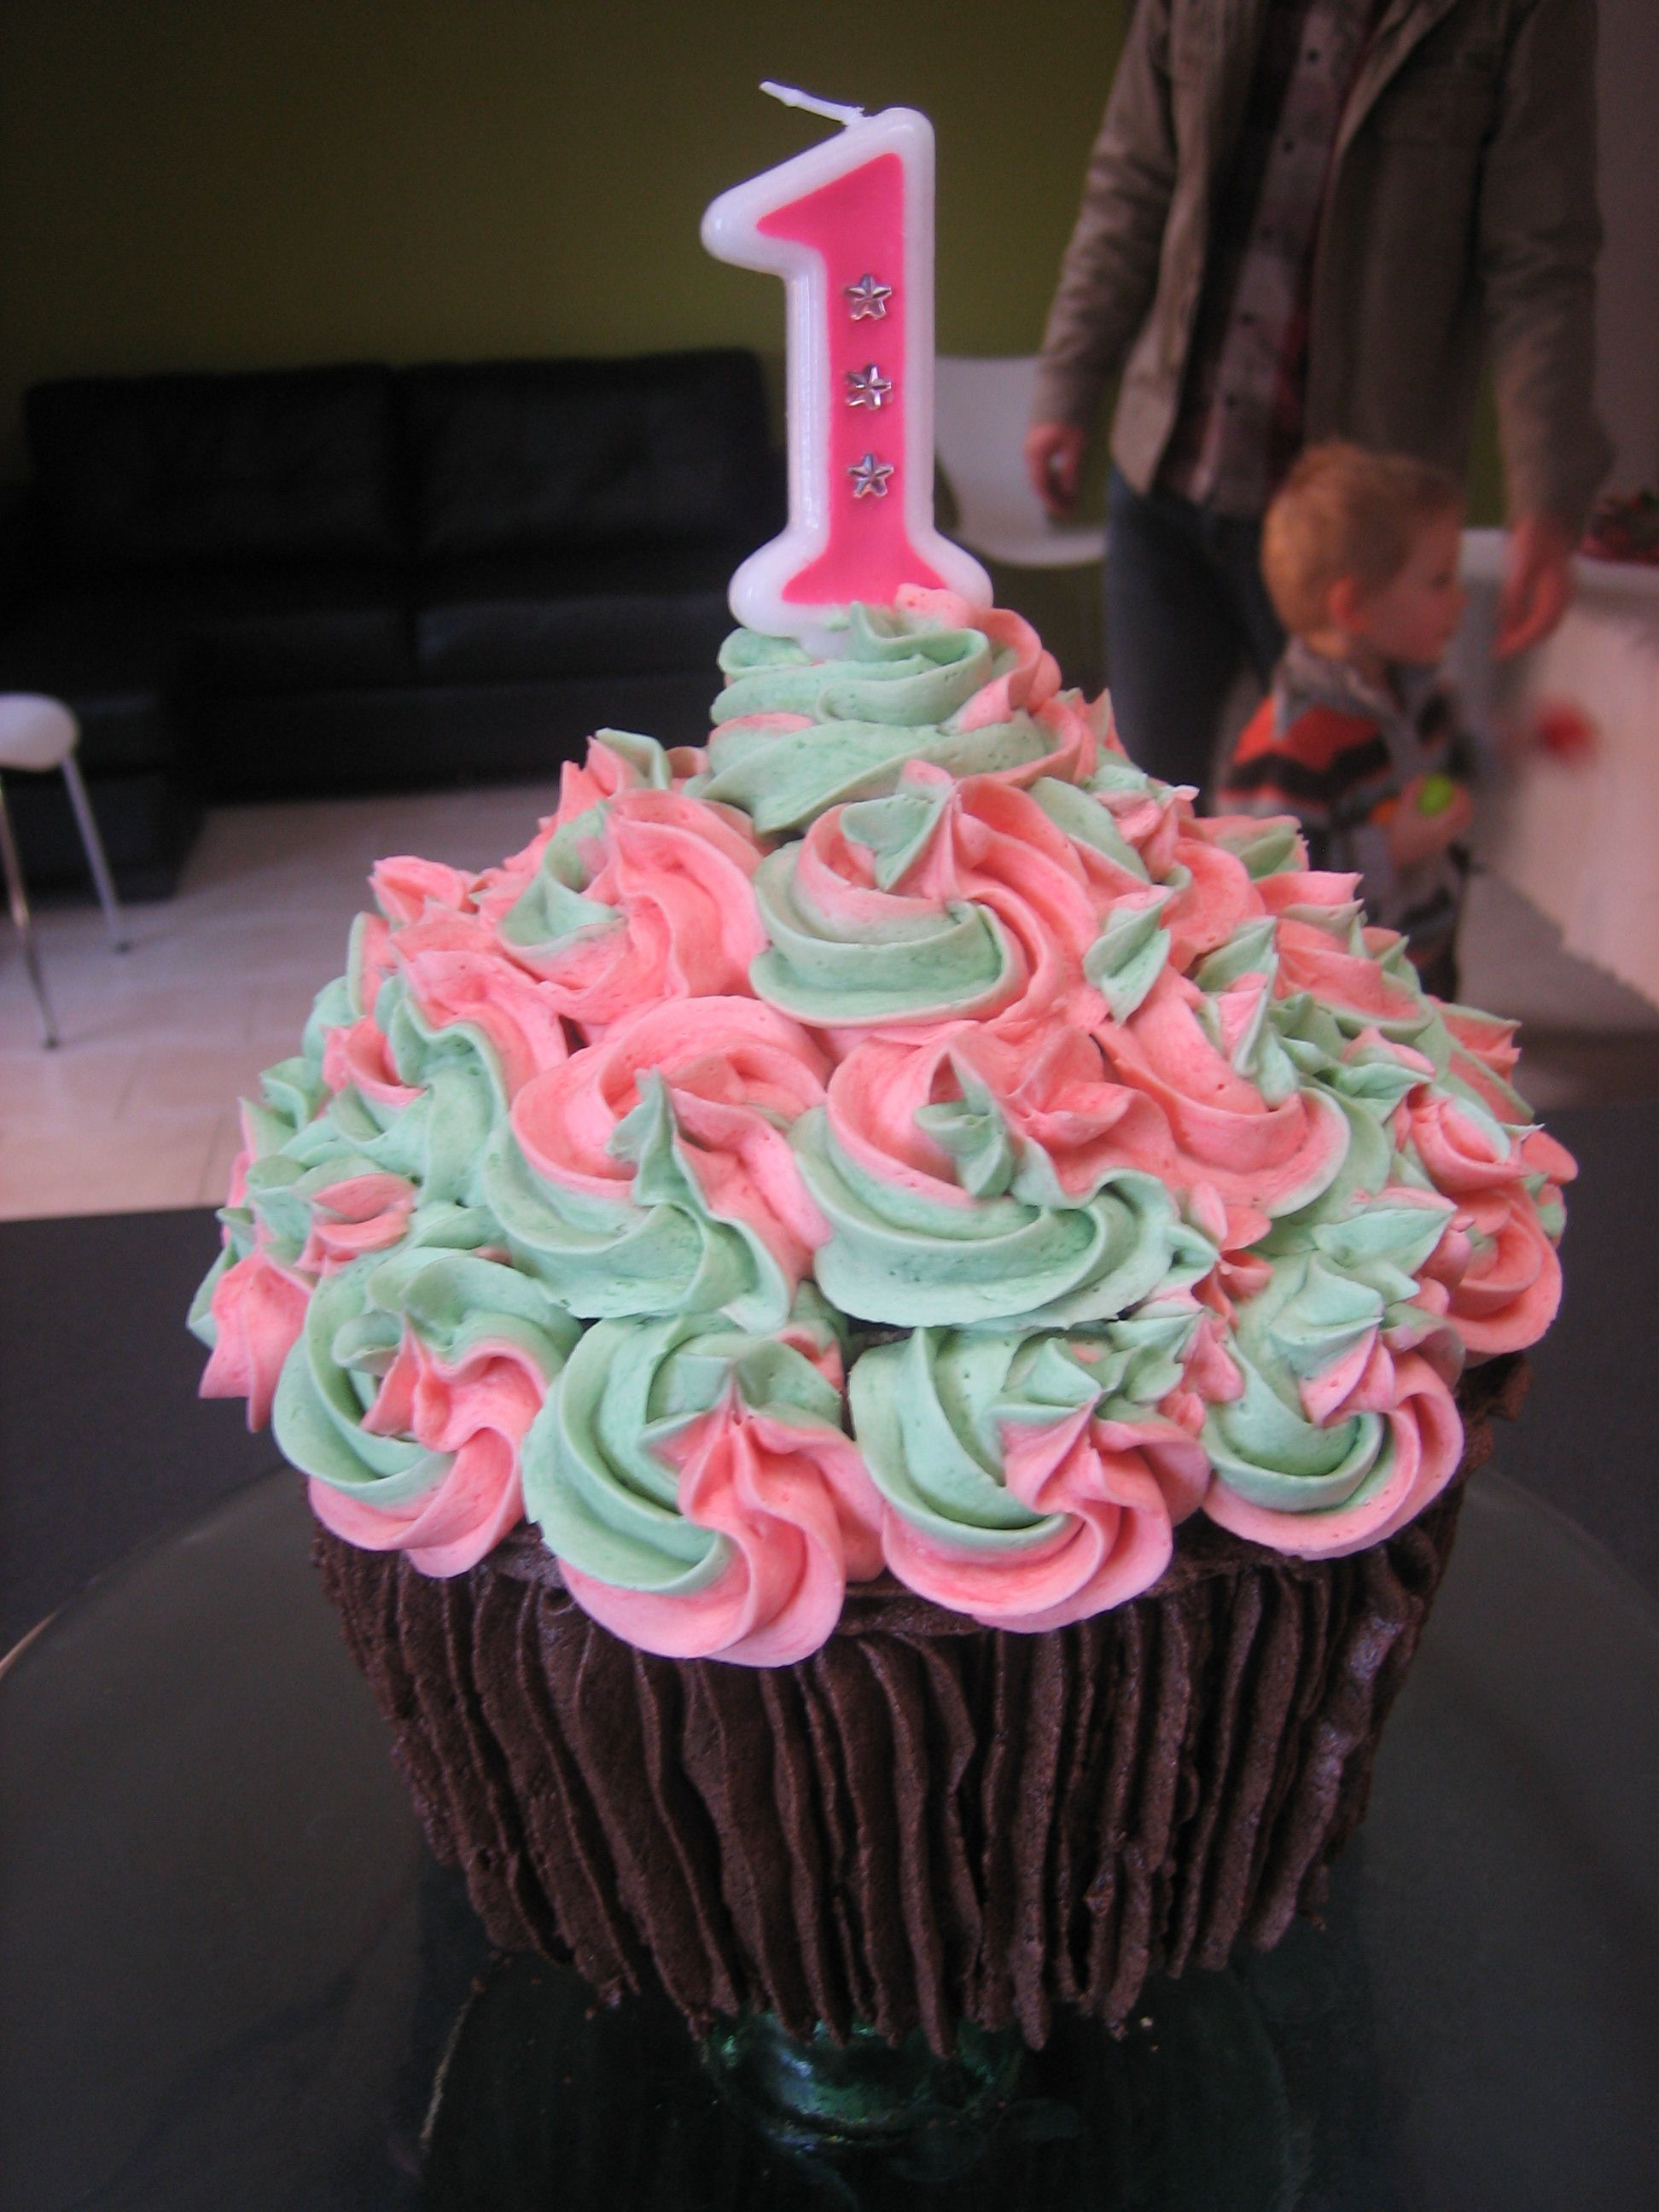 This Is The Giant Cupcake I Made For My Daughters 1st Birthday